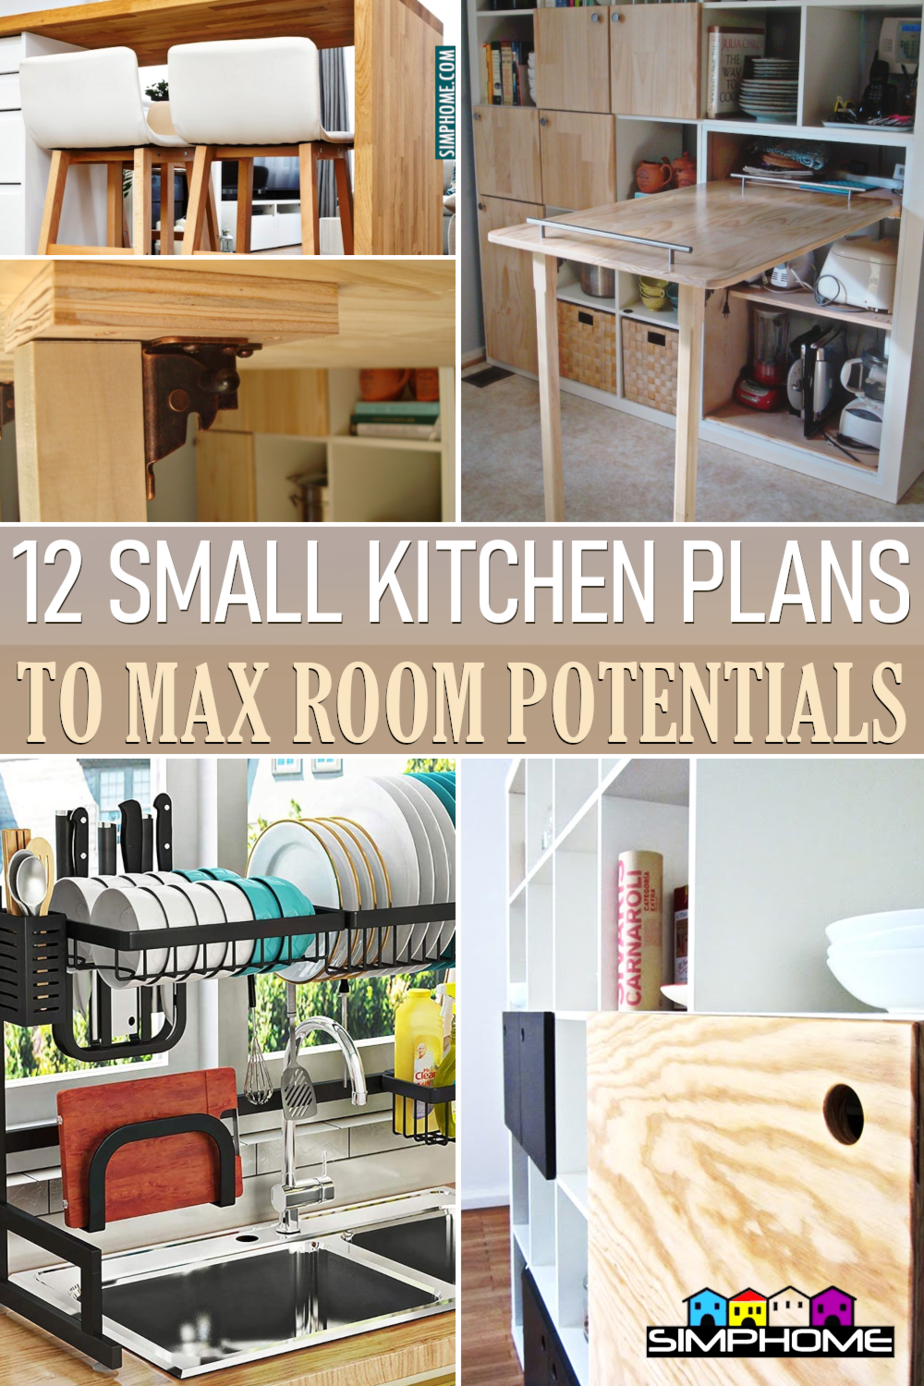 12 Small Kitchen Plan to Max Out Every Inch of Any Room Potential via Simphome.comFeatured